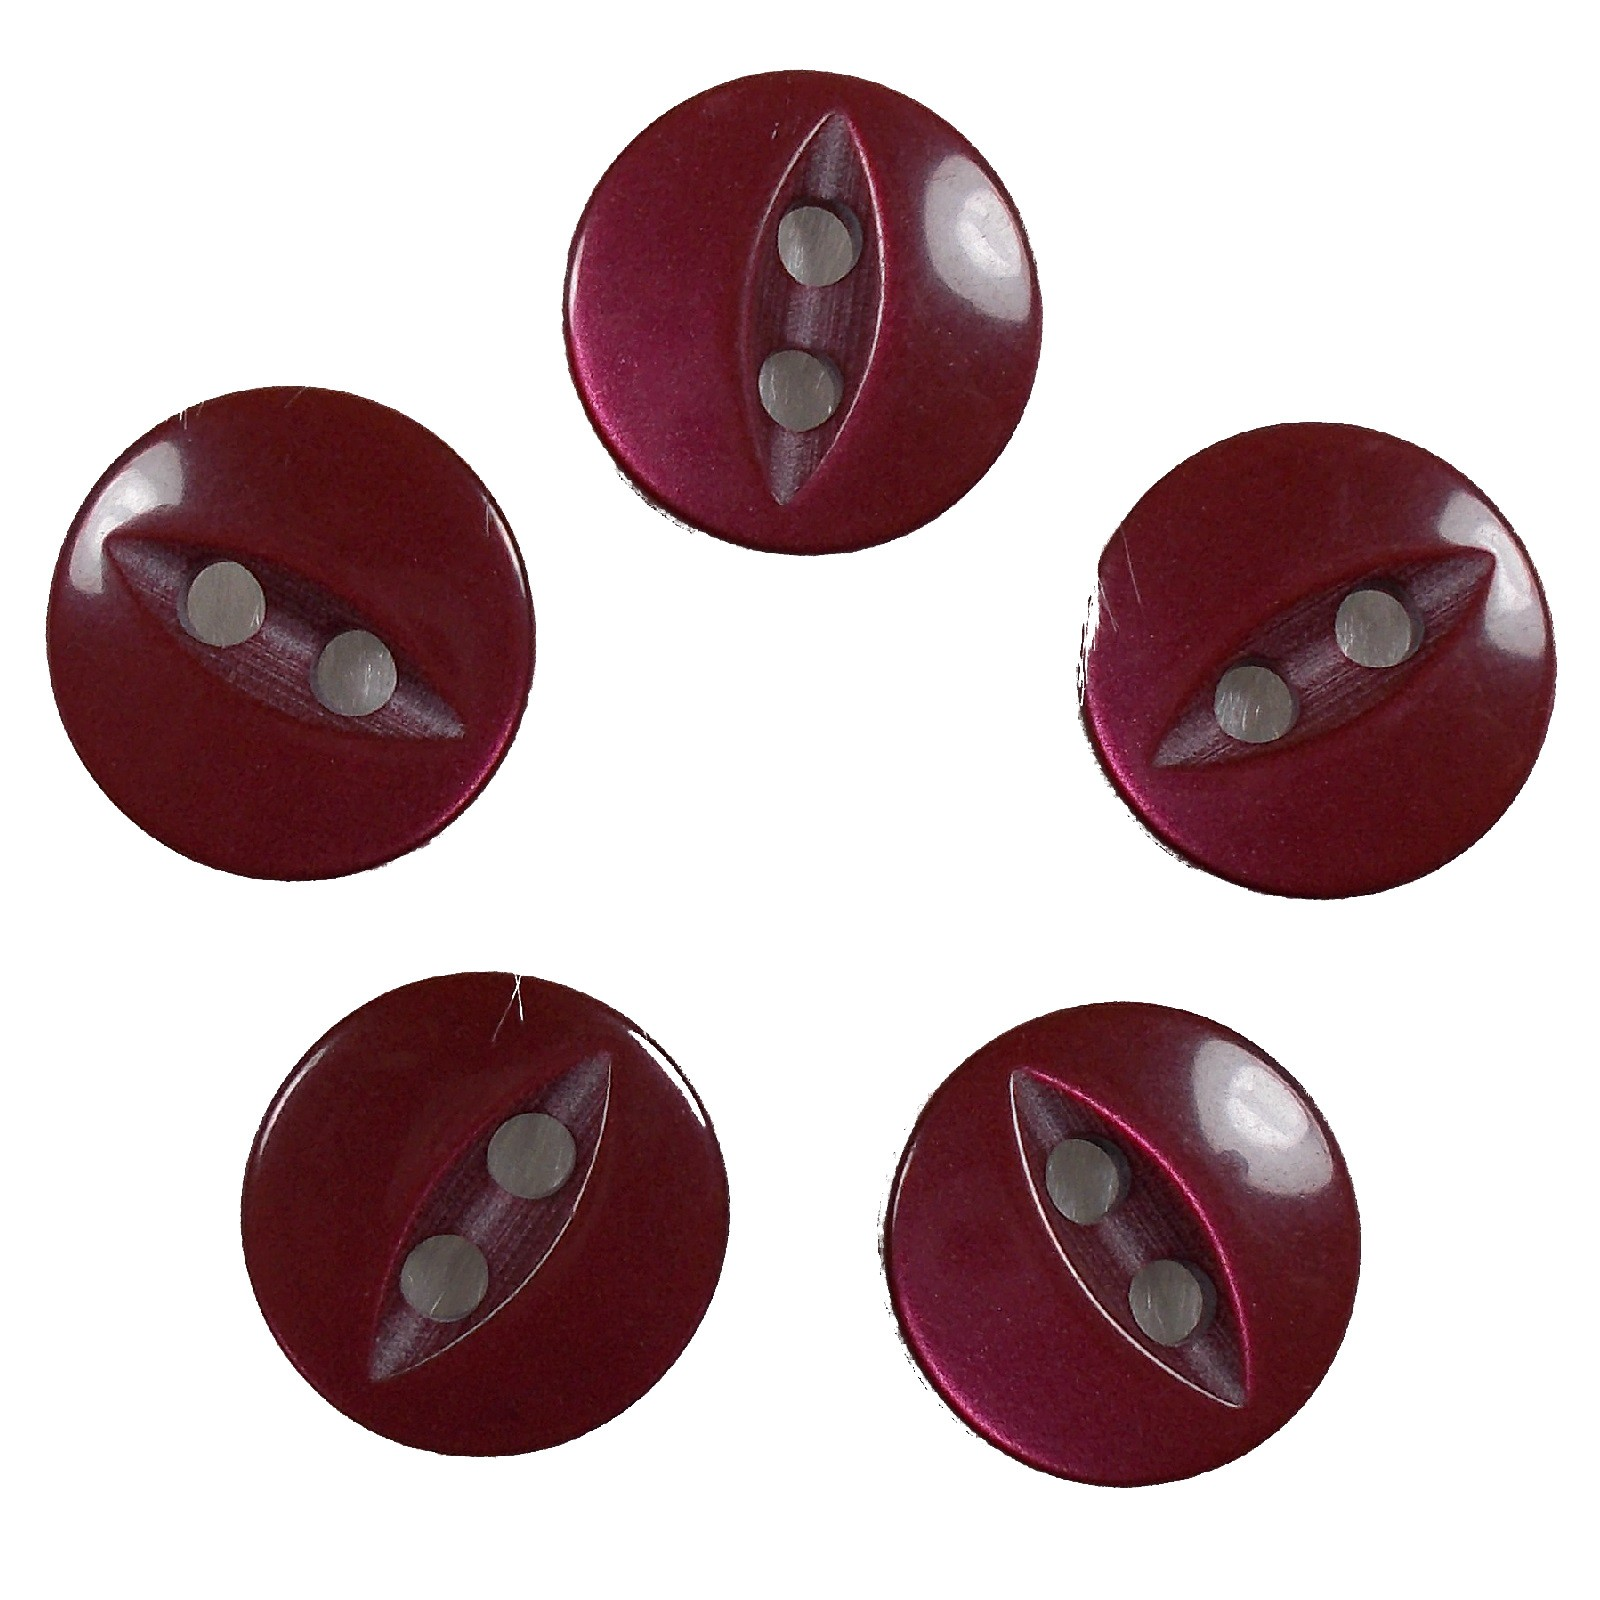 Fisheye Basic Buttons 11mm Burgundy Pack of 5